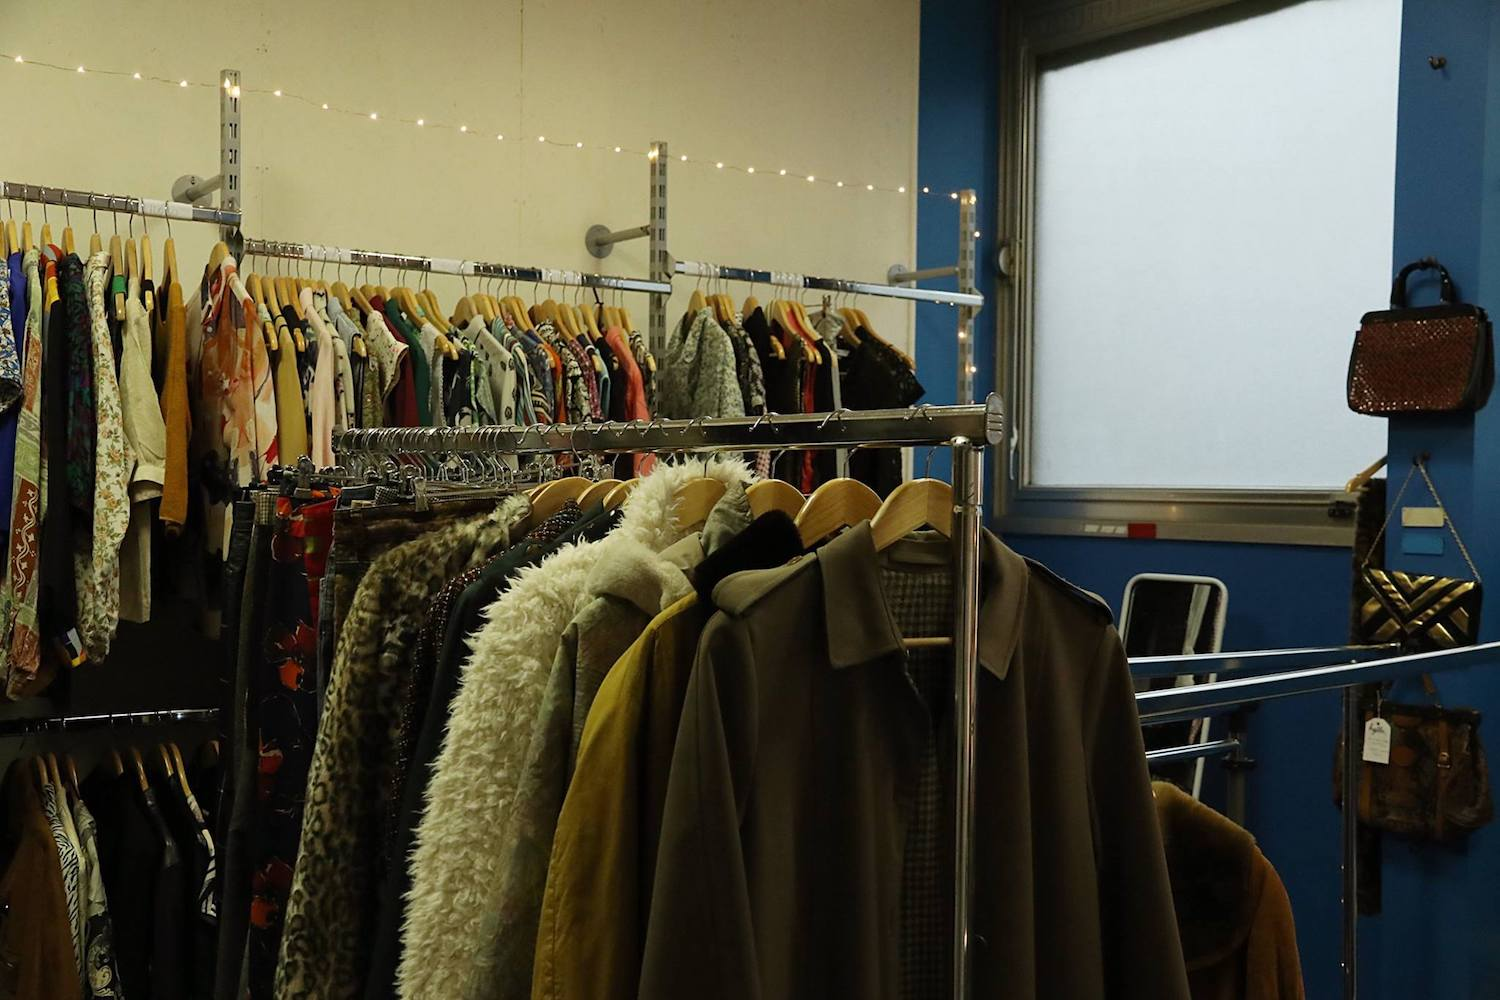 Hylla clothes renting business in France